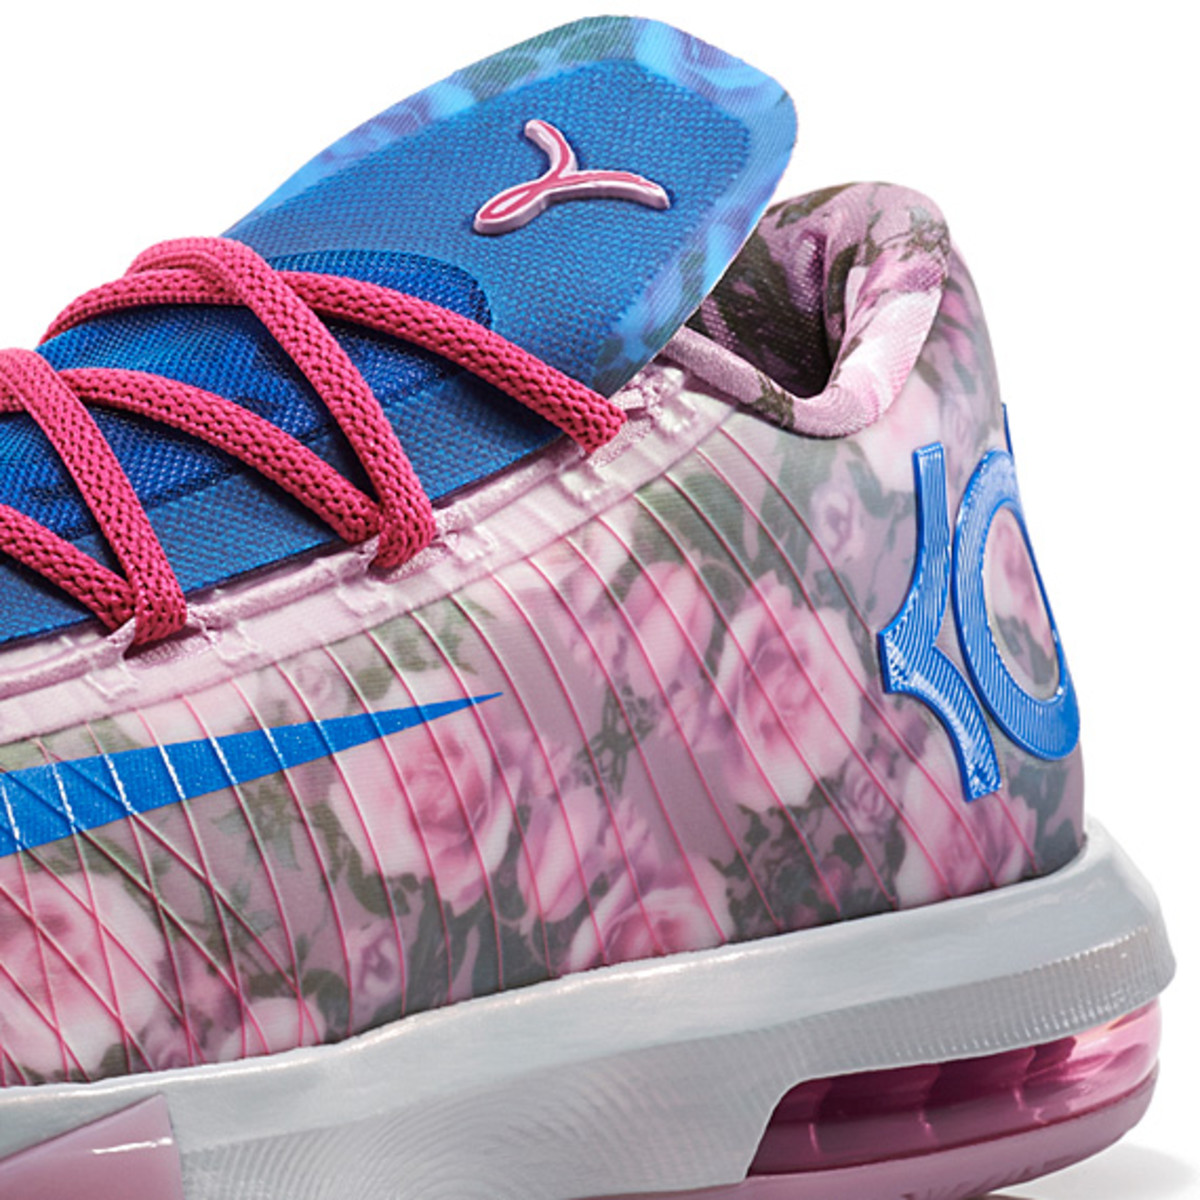 nike-kd-6-aunt-pearl-collection-officially-unveiled04